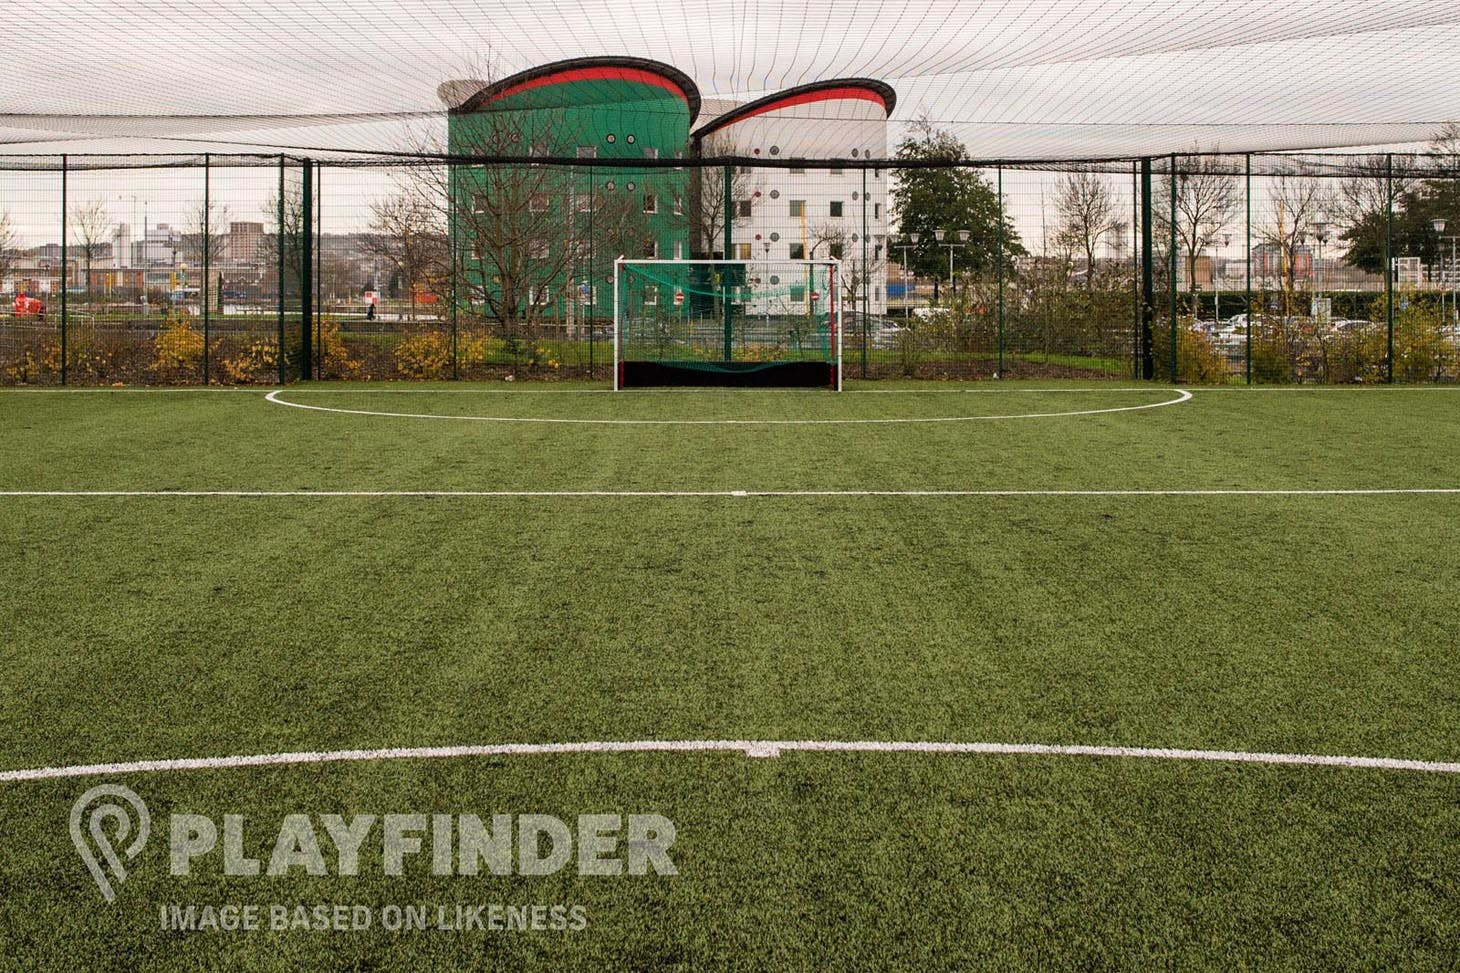 Our Lady's RC High School Outdoor | 3G Astroturf hockey pitch